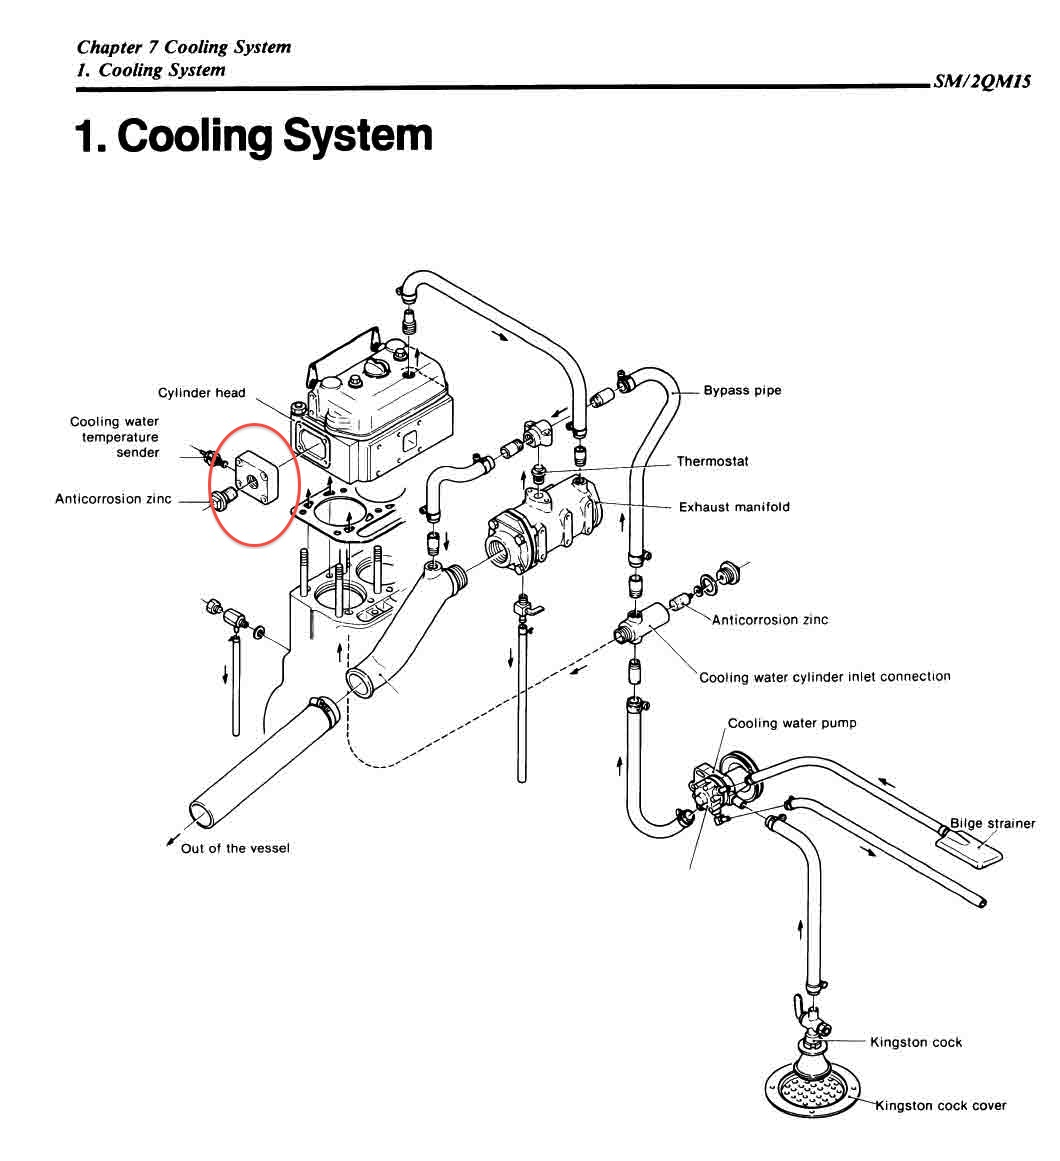 Click image for larger version  Name:2QM15cooling2.jpg Views:922 Size:150.9 KB ID:38770